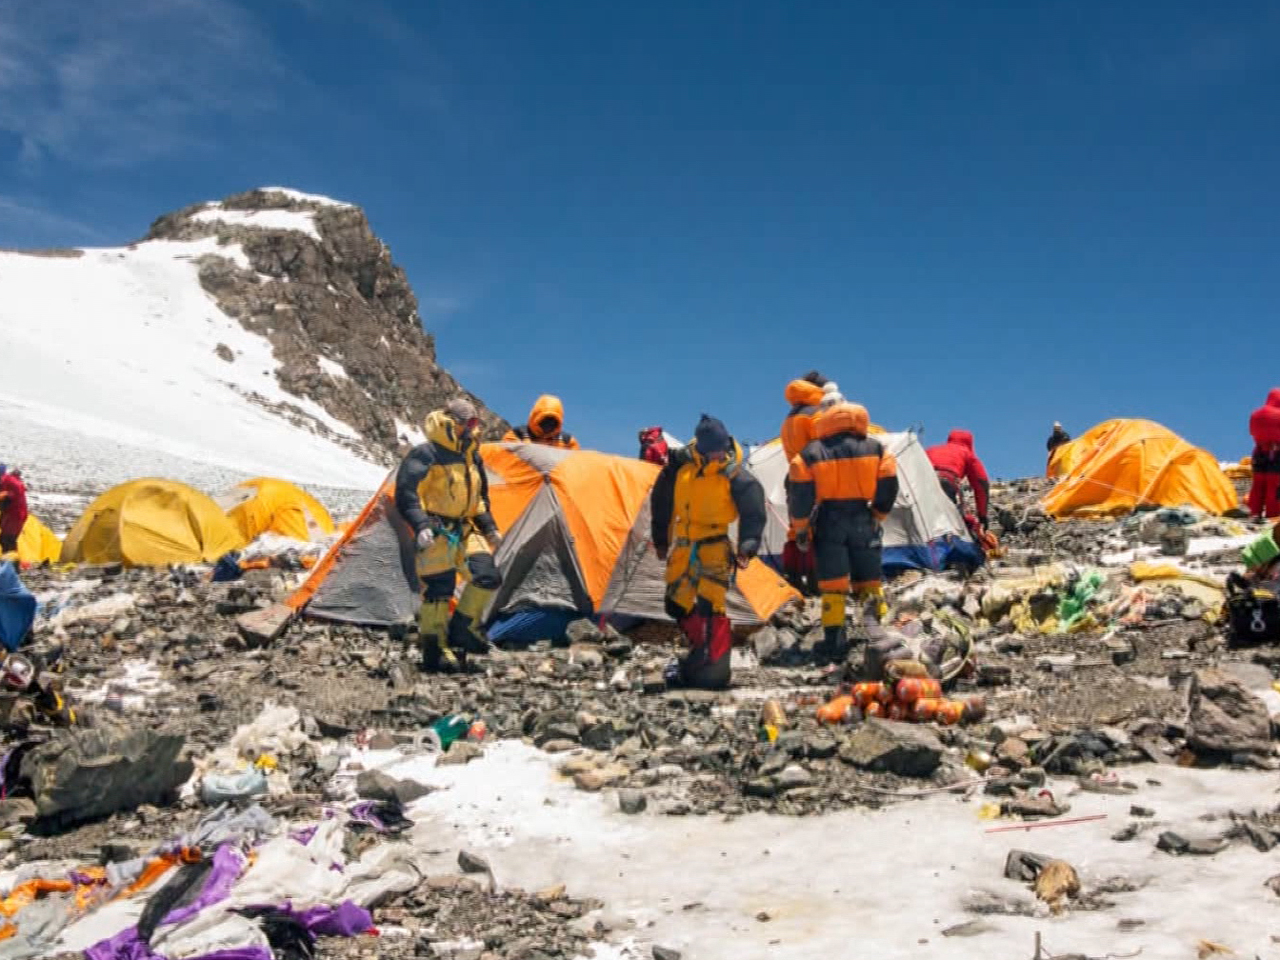 60 years of climbing leaves Mount Everest polluted, crowded